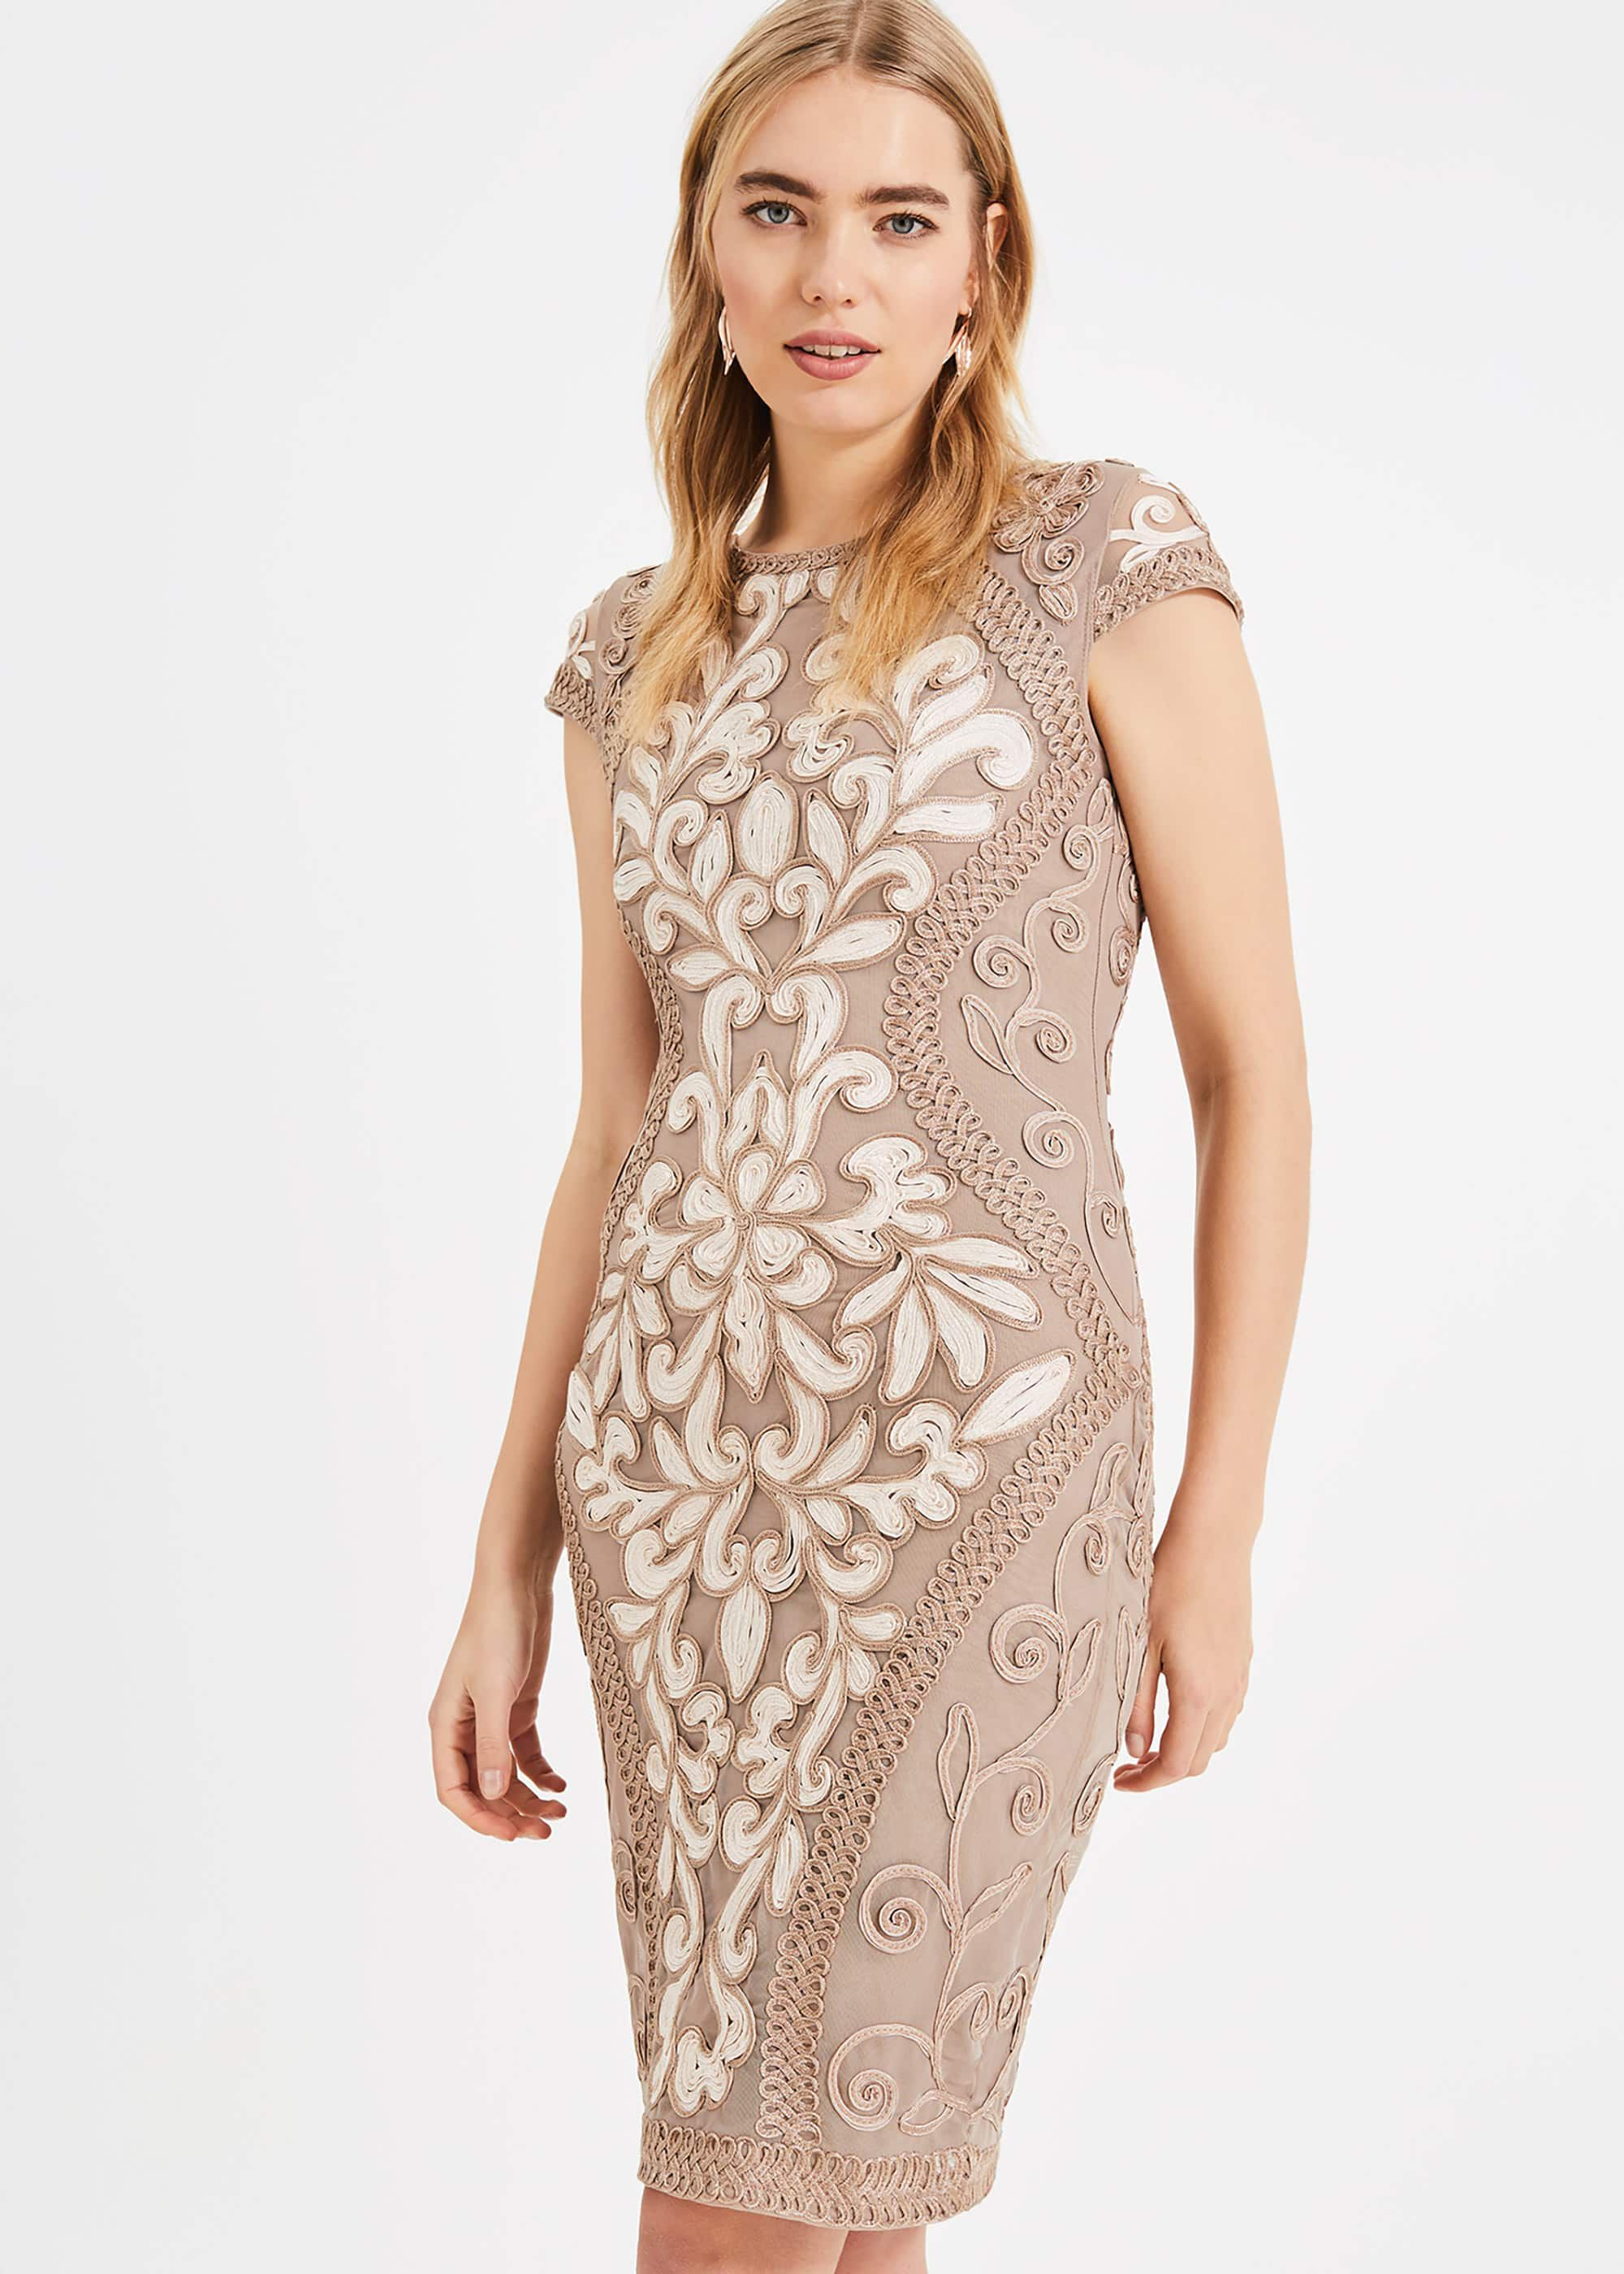 Phase Eight Perdy Tapework Lace Dress, Cream, Fitted